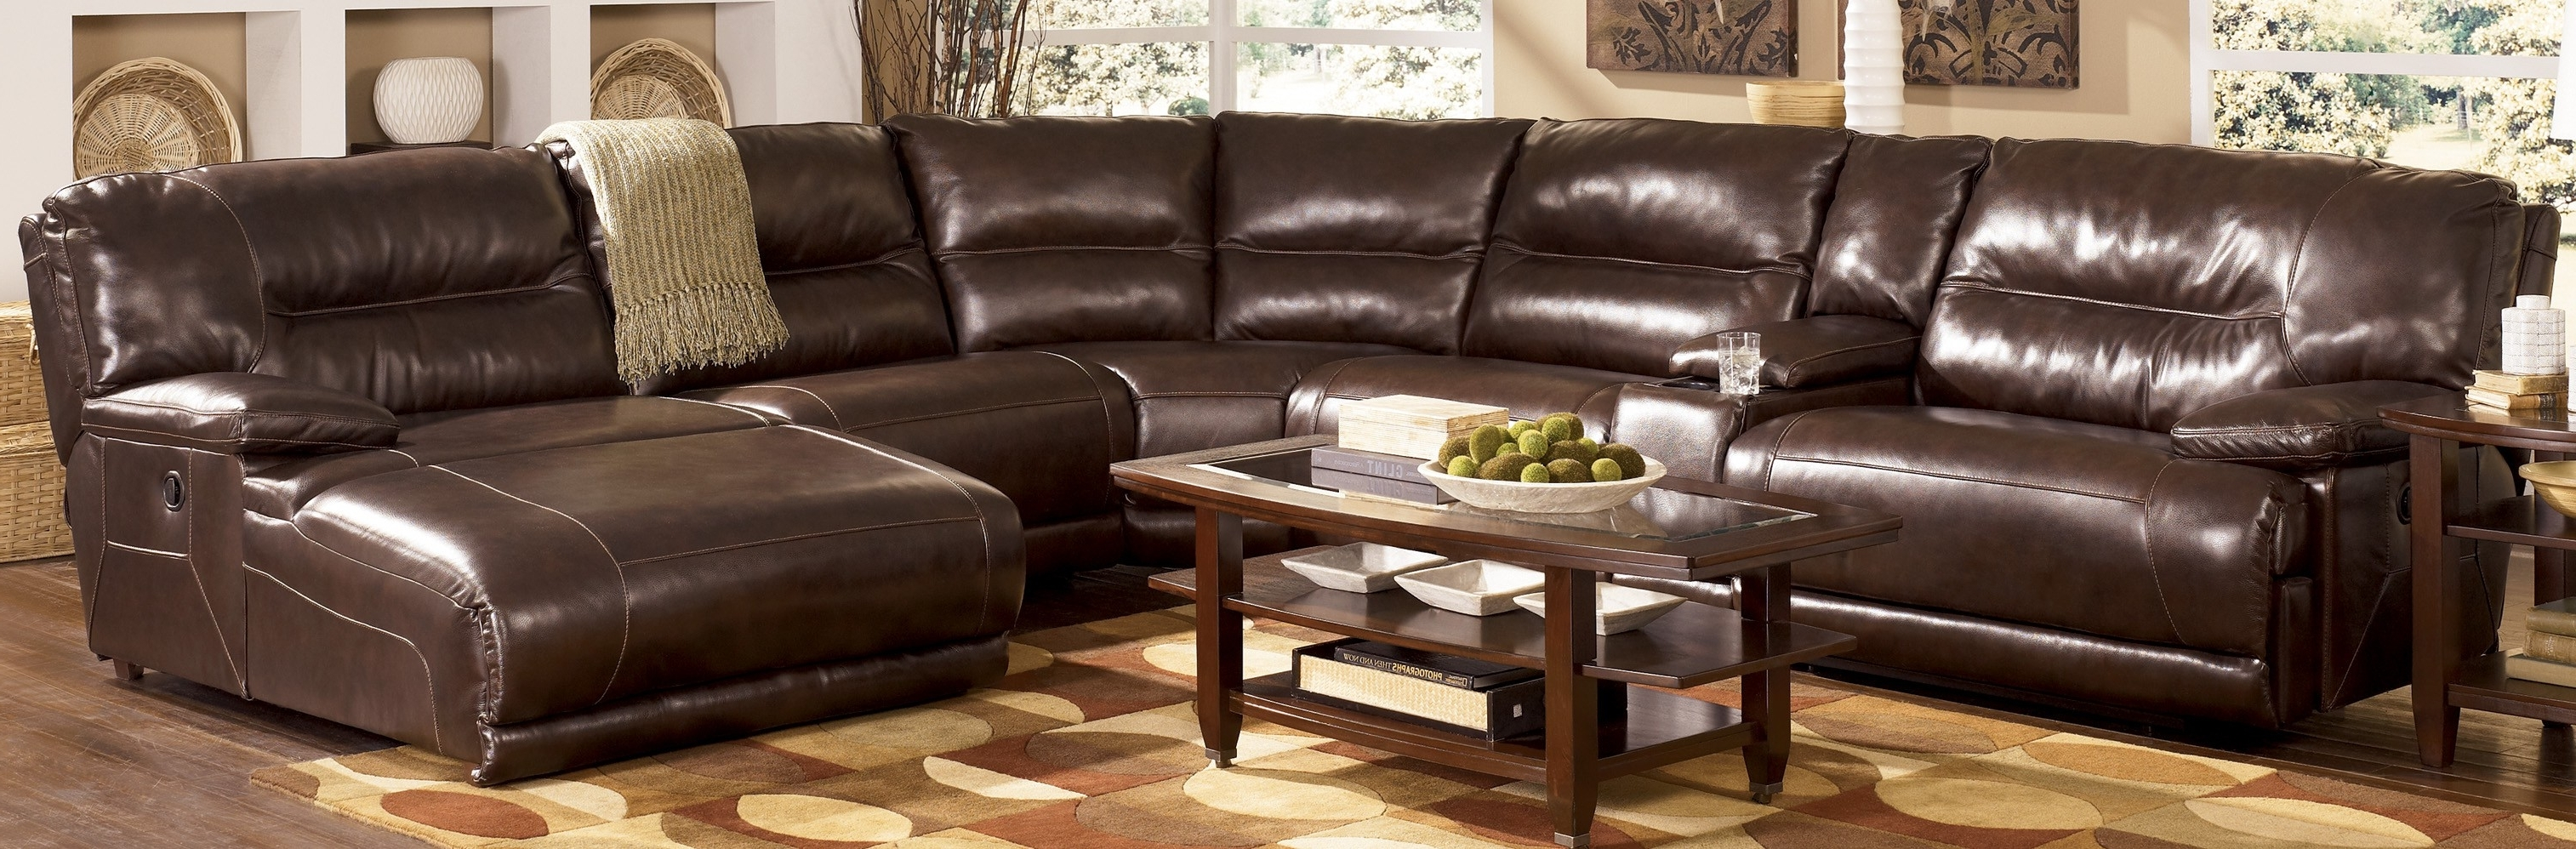 Recent Big Lots Furniture Reviews Natuzzi Leather Reclining Sectional Throughout Leather Recliner Sectional Sofas (View 14 of 15)